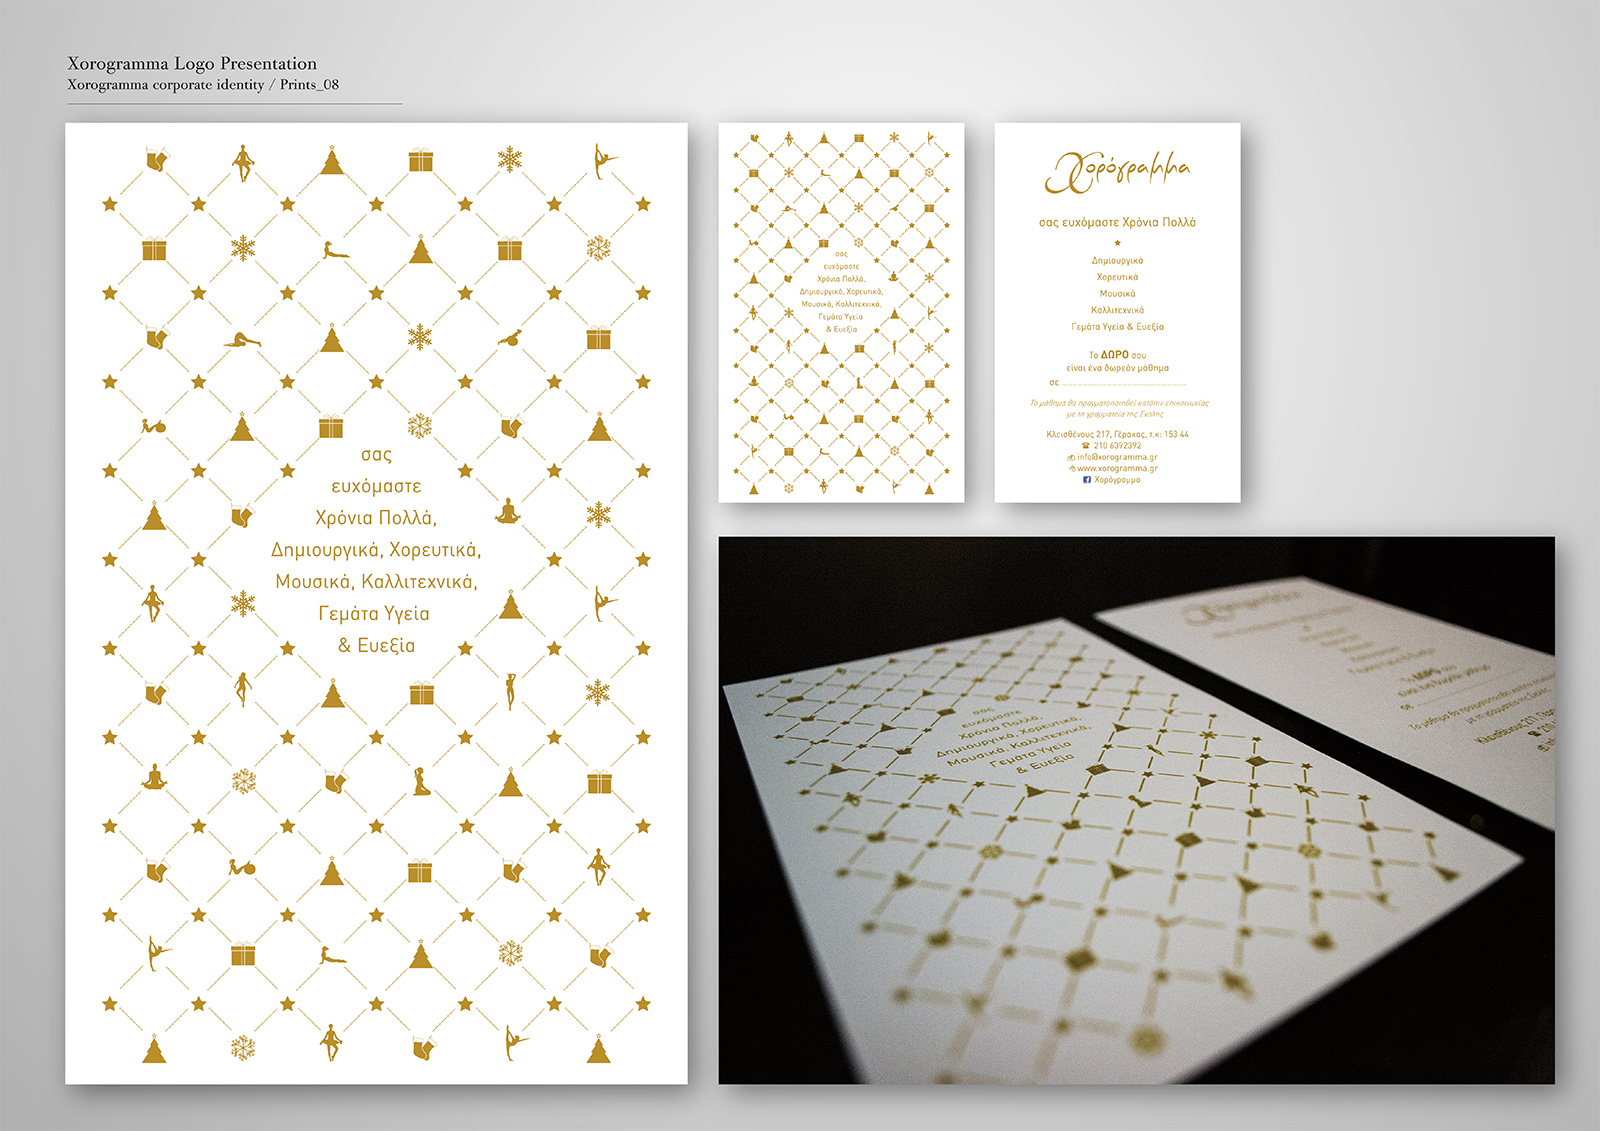 Corporate Identity Xorogramma_presentation_08_yianart